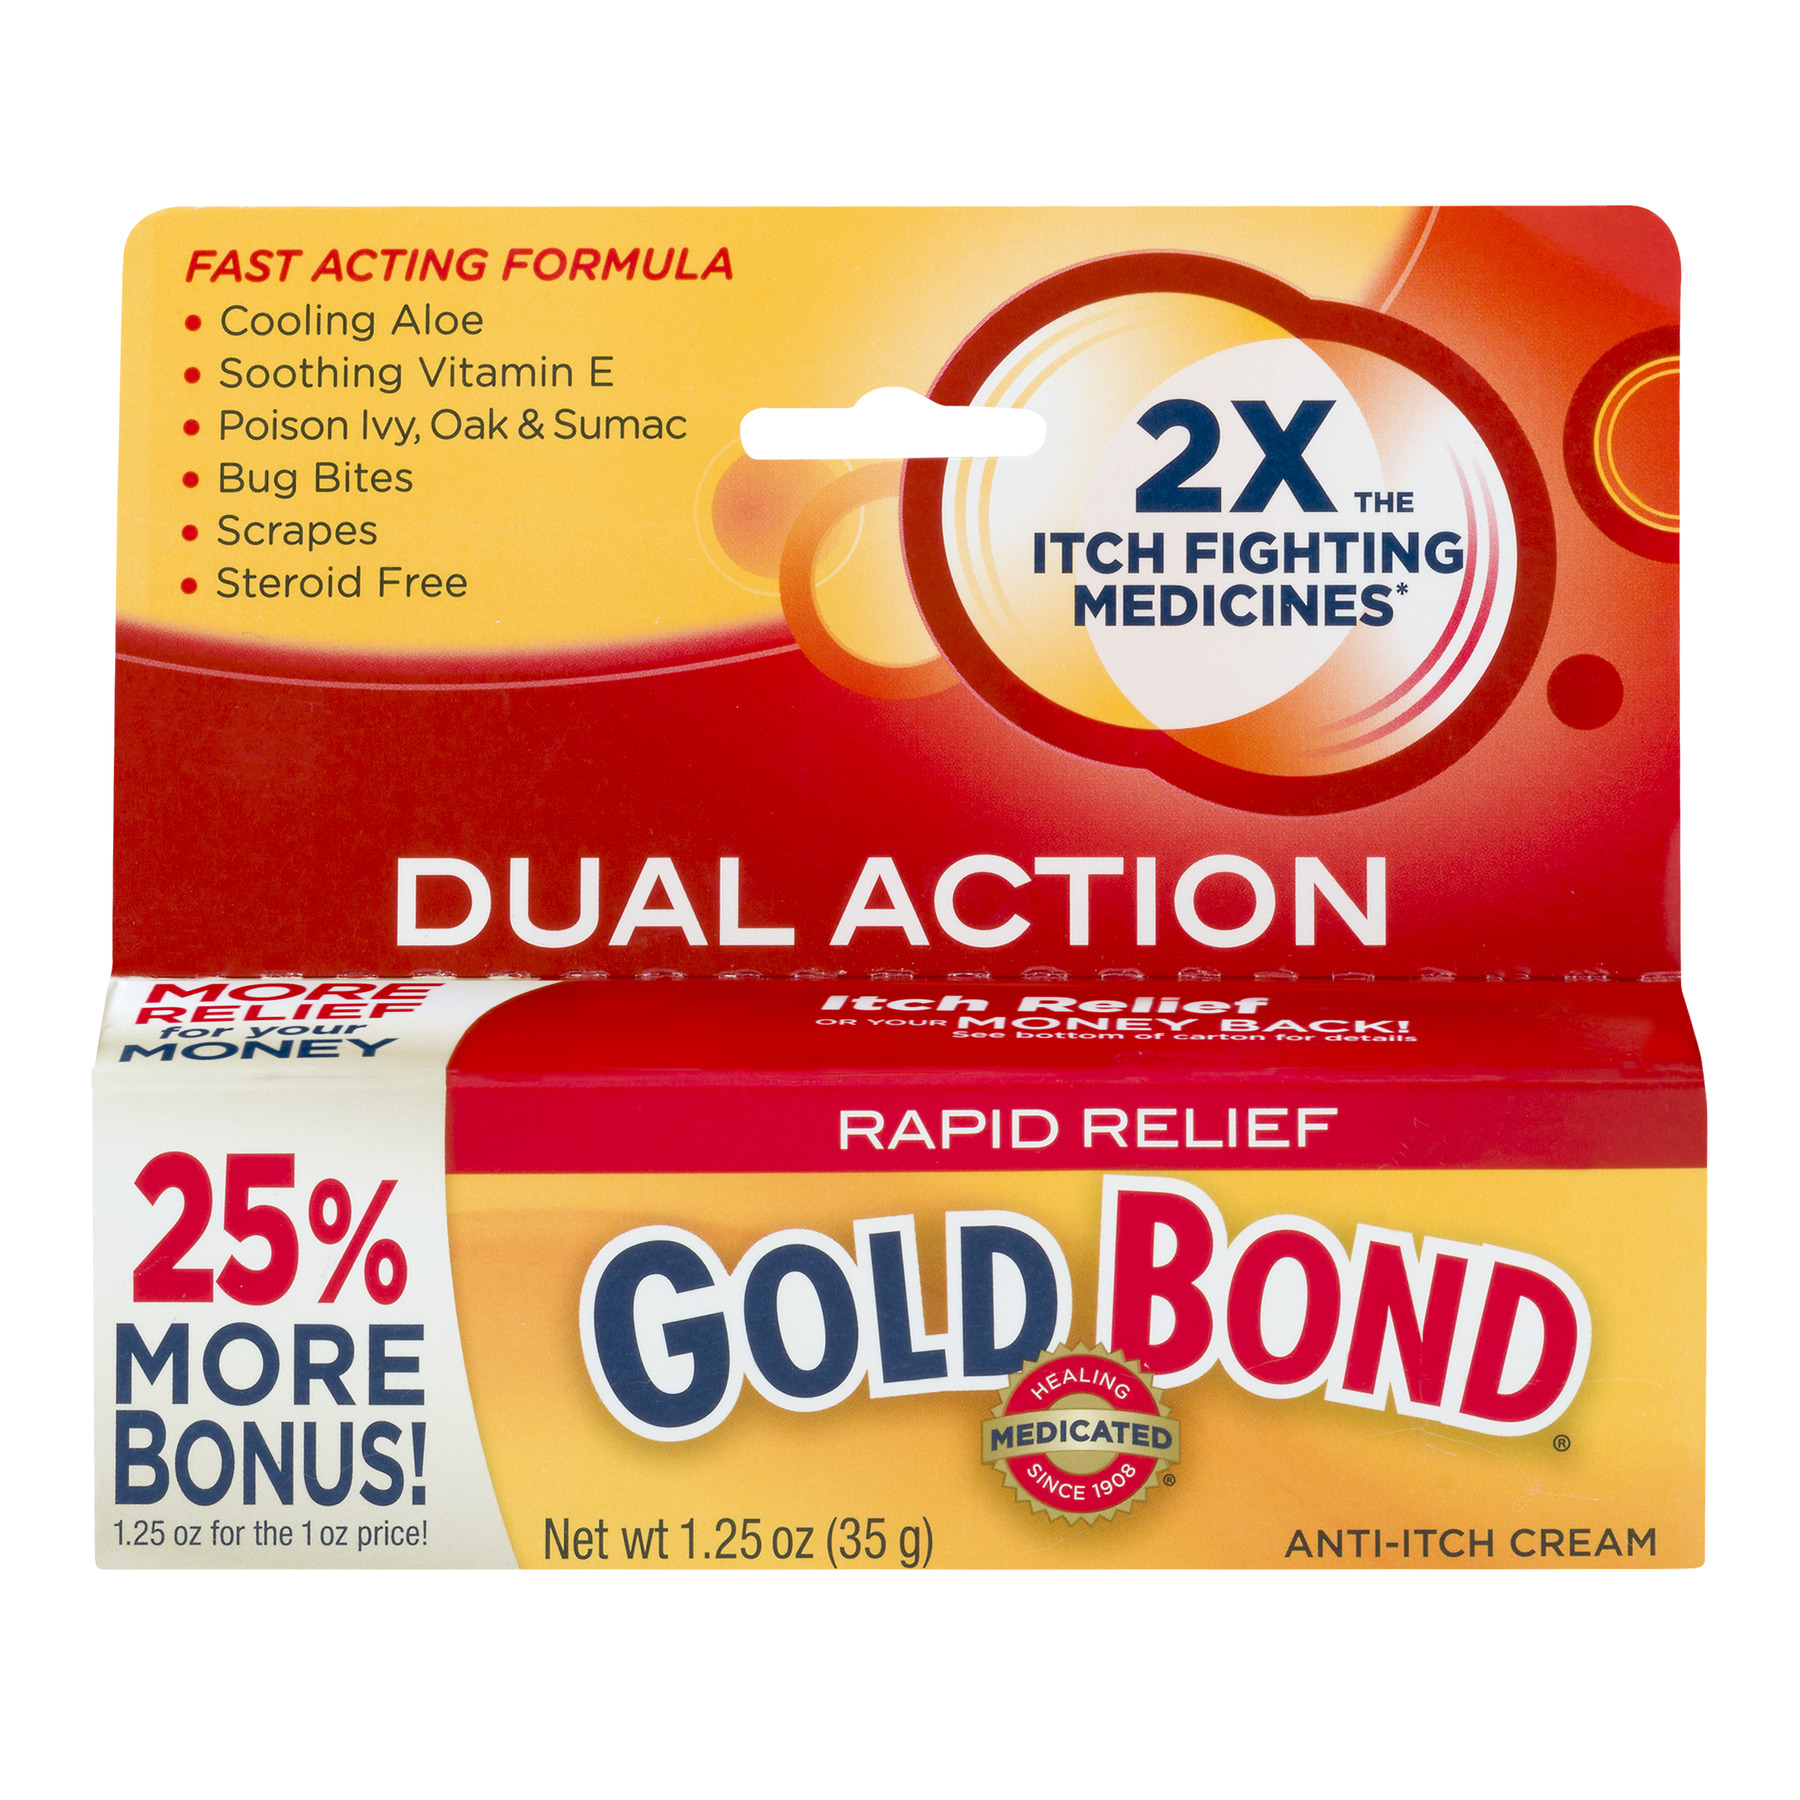 Gold Bond Rapid Relief Anti-Itch Cream, 1.25 OZ